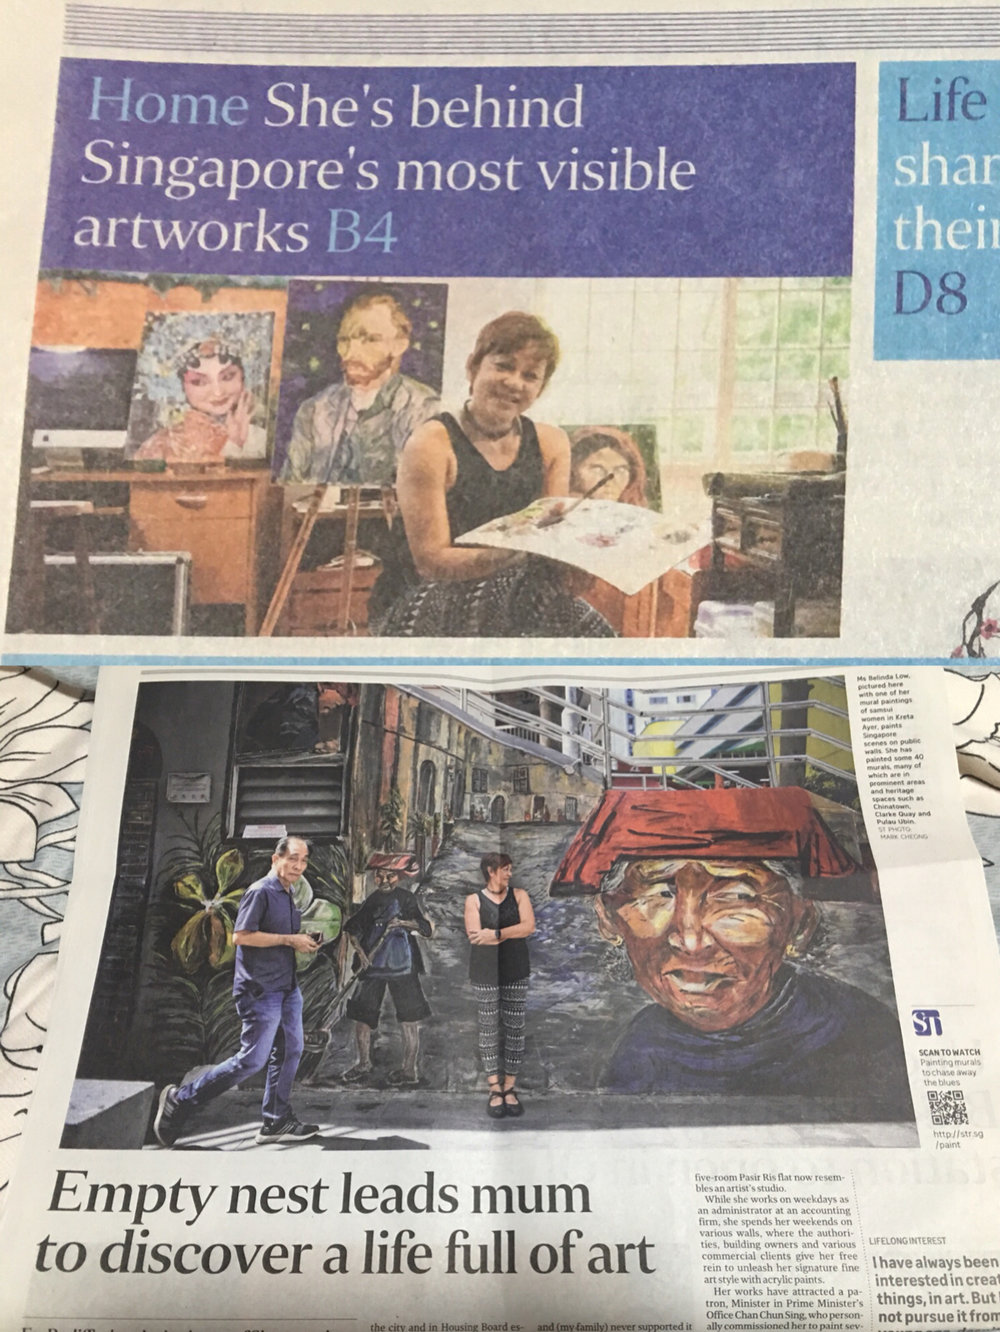 What a start to the New Year The ST article appeared on January 01 2018 in their Life page. This is beyond my imagination and I feel very blessed for what's happening in my life and art journey now.